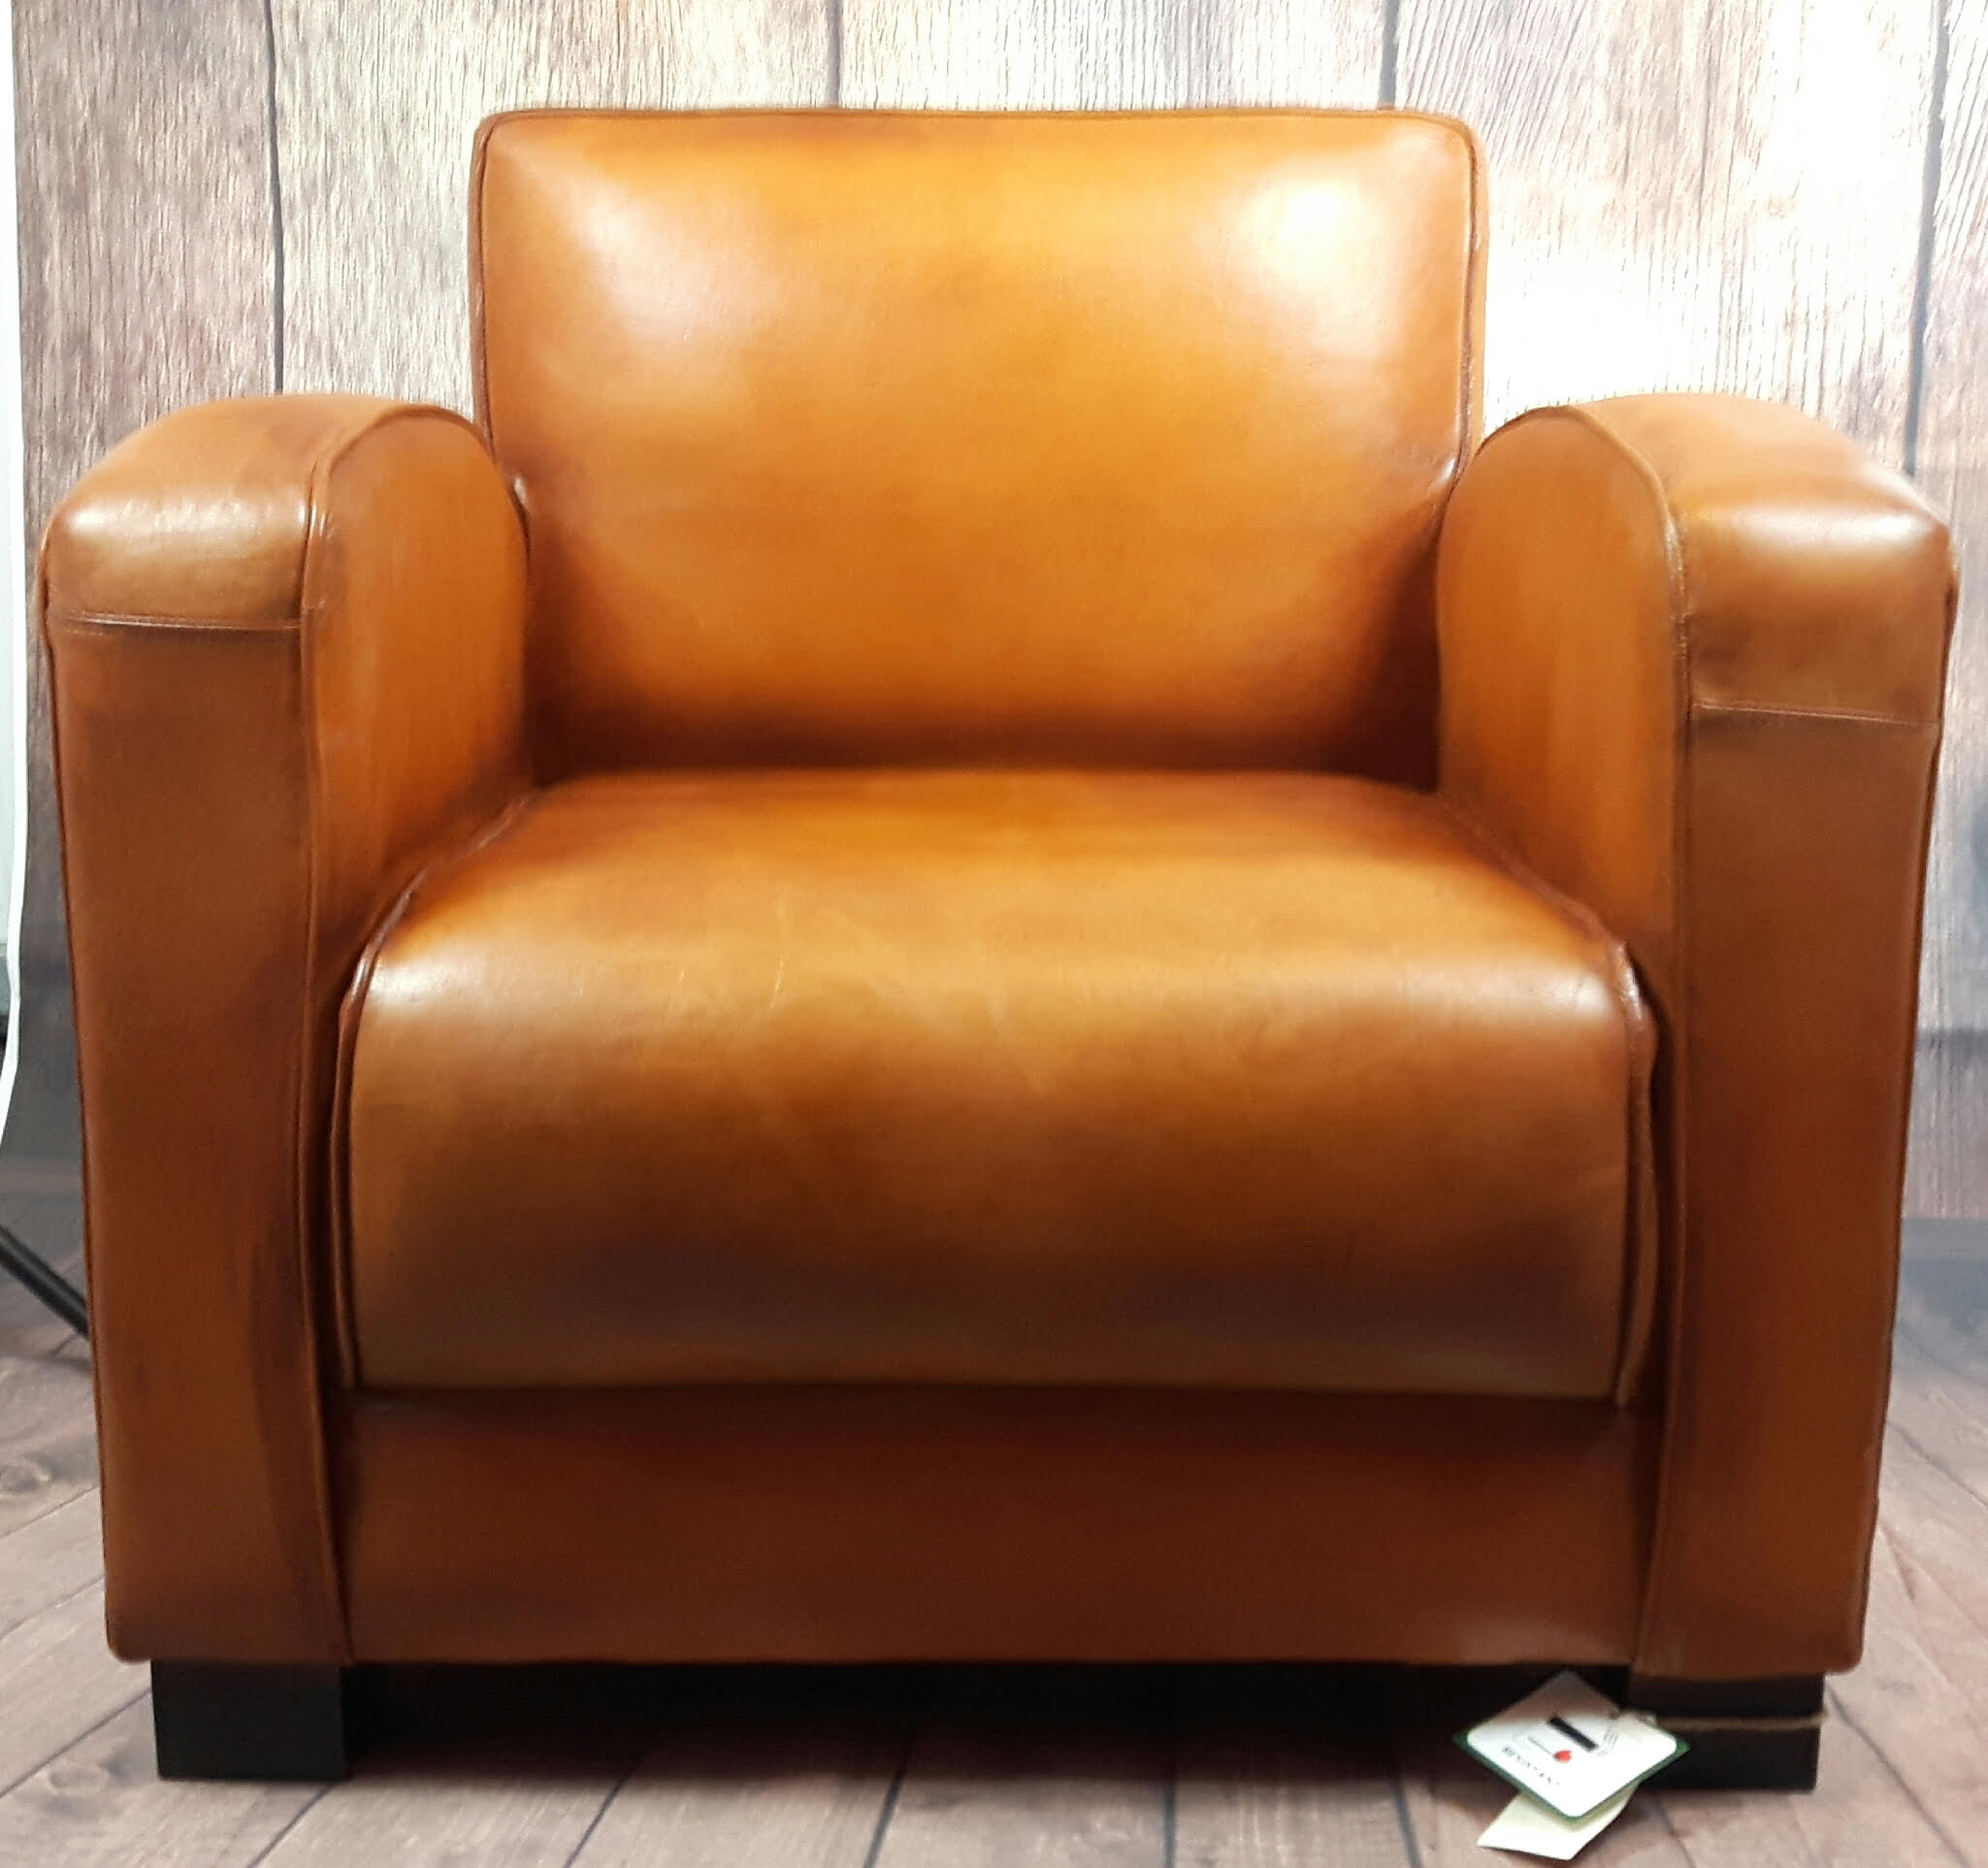 Retro Leather Club Chair' from GB Salvage. We stock a ...